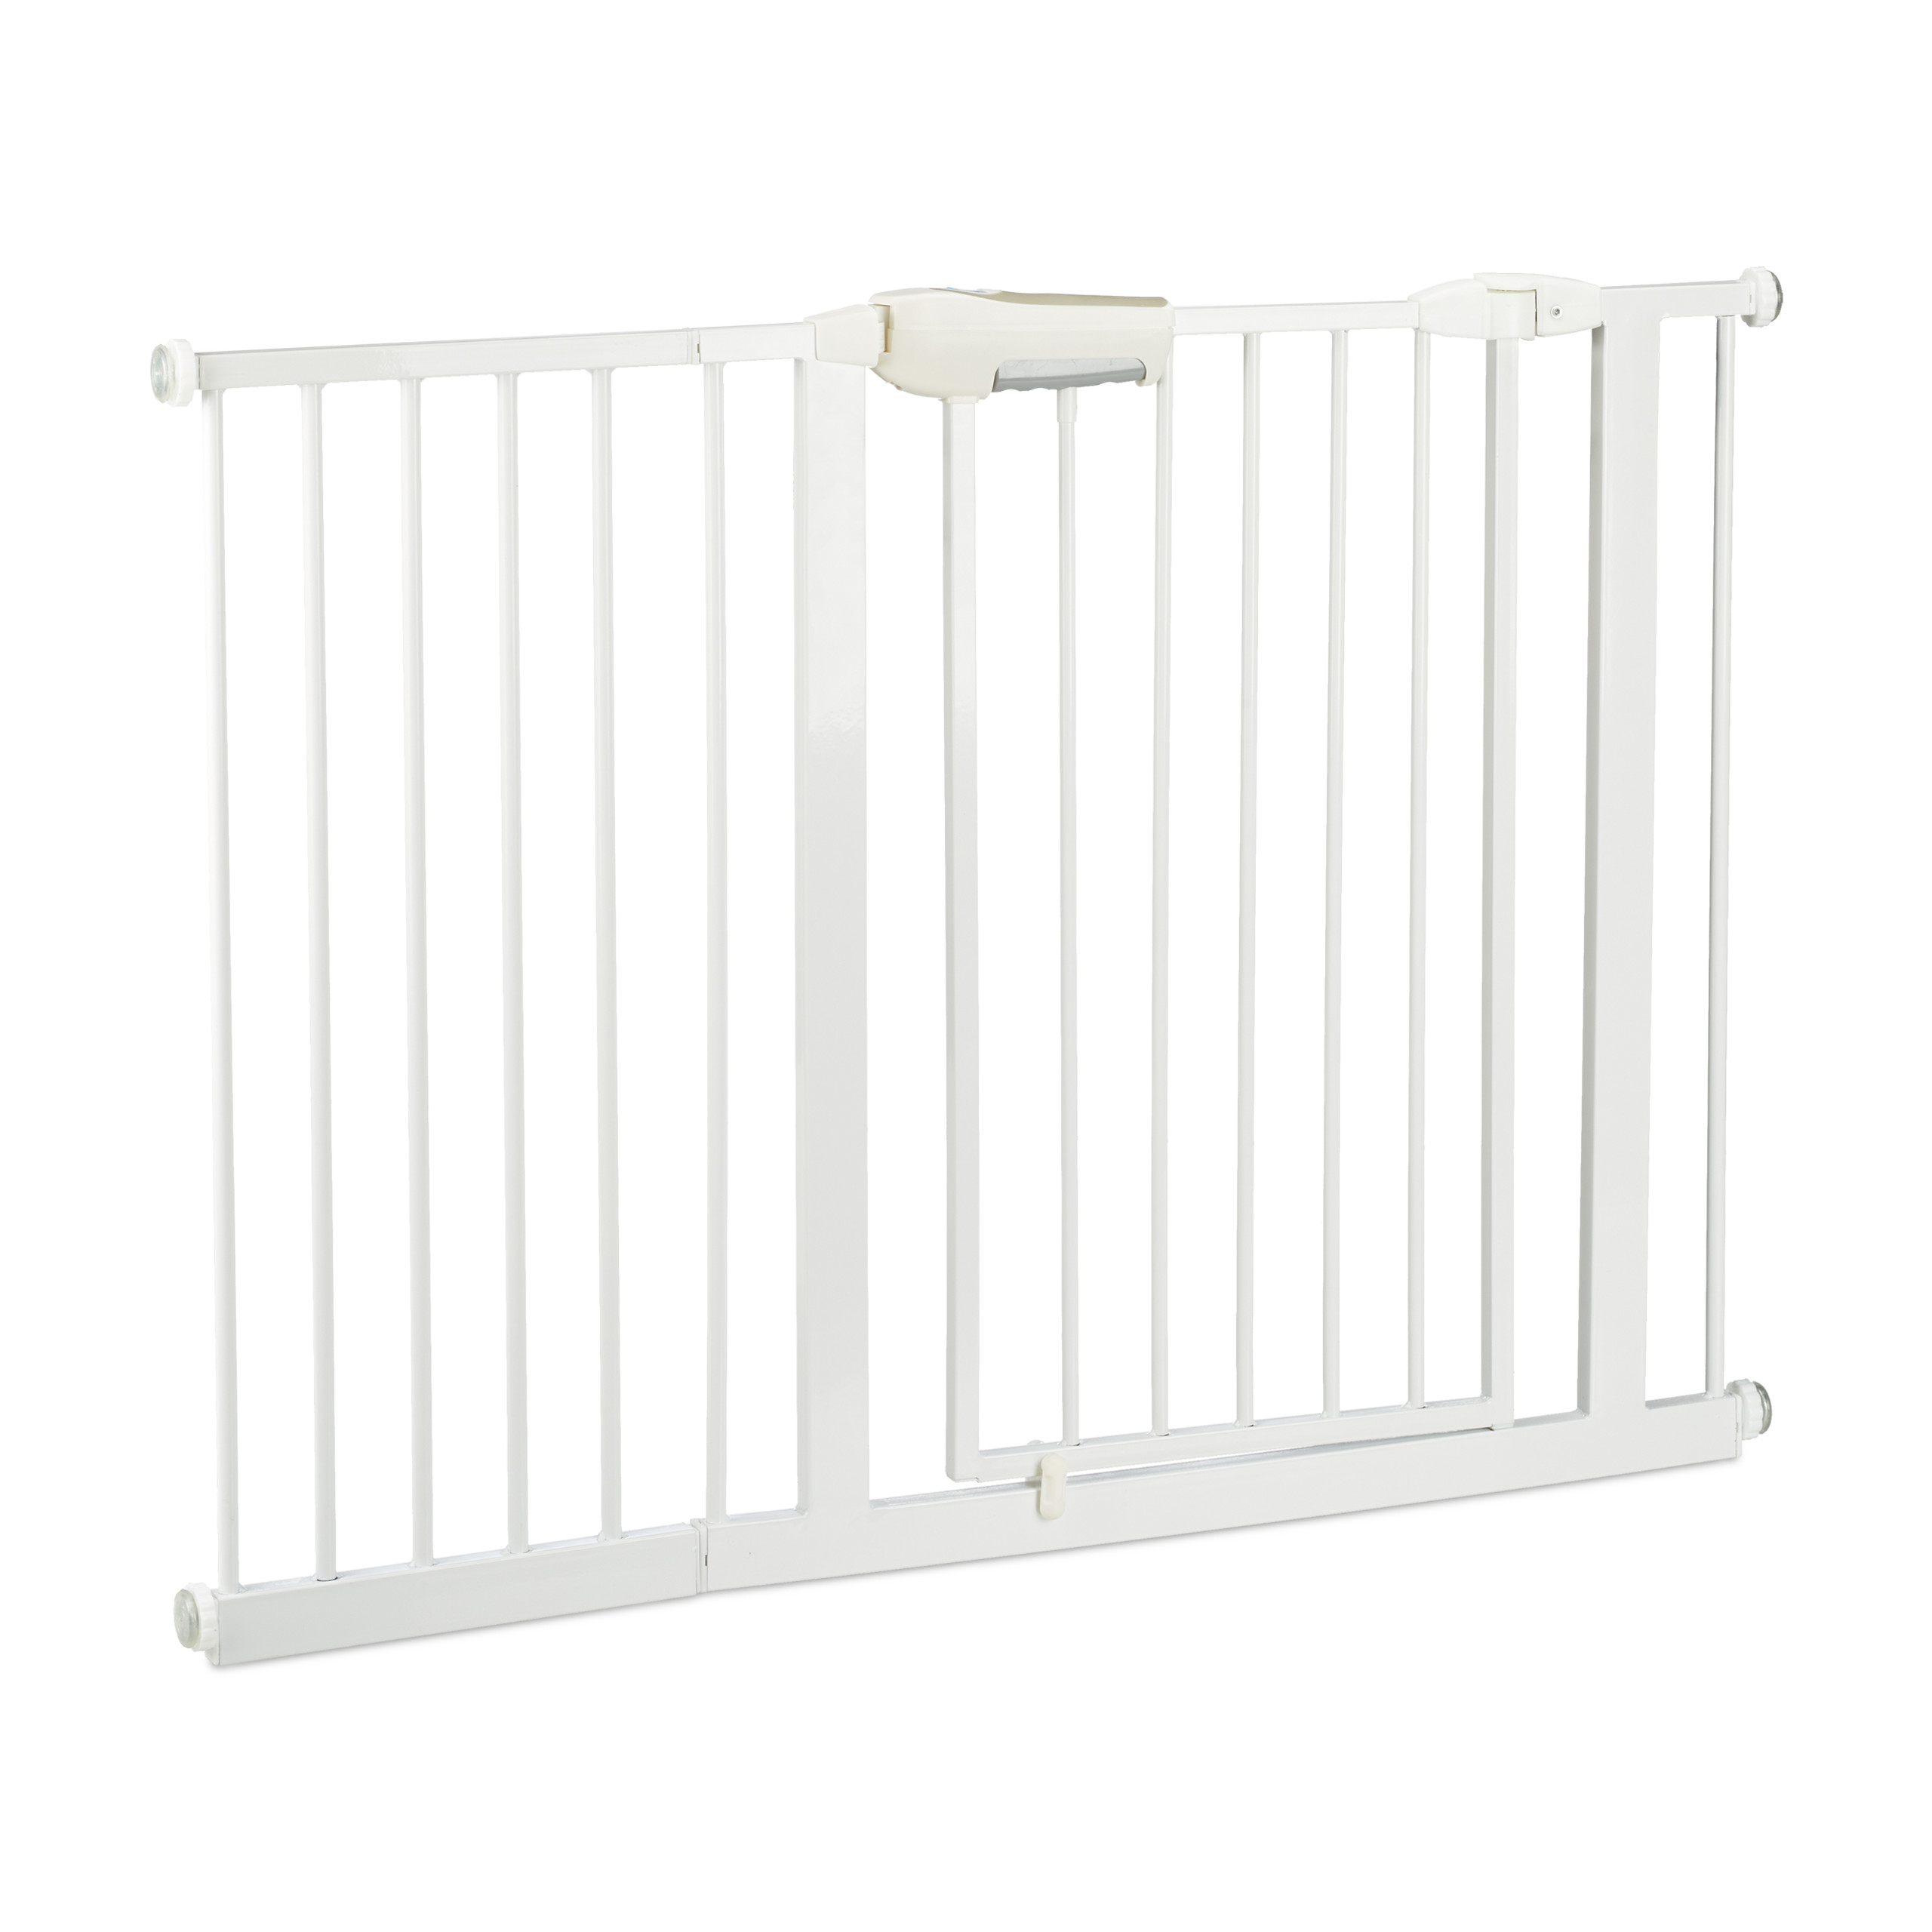 Pressure-Fit-Baby-Safety-Gate-Extension-Security-Barrier-for-Stairs-and-Doors thumbnail 26